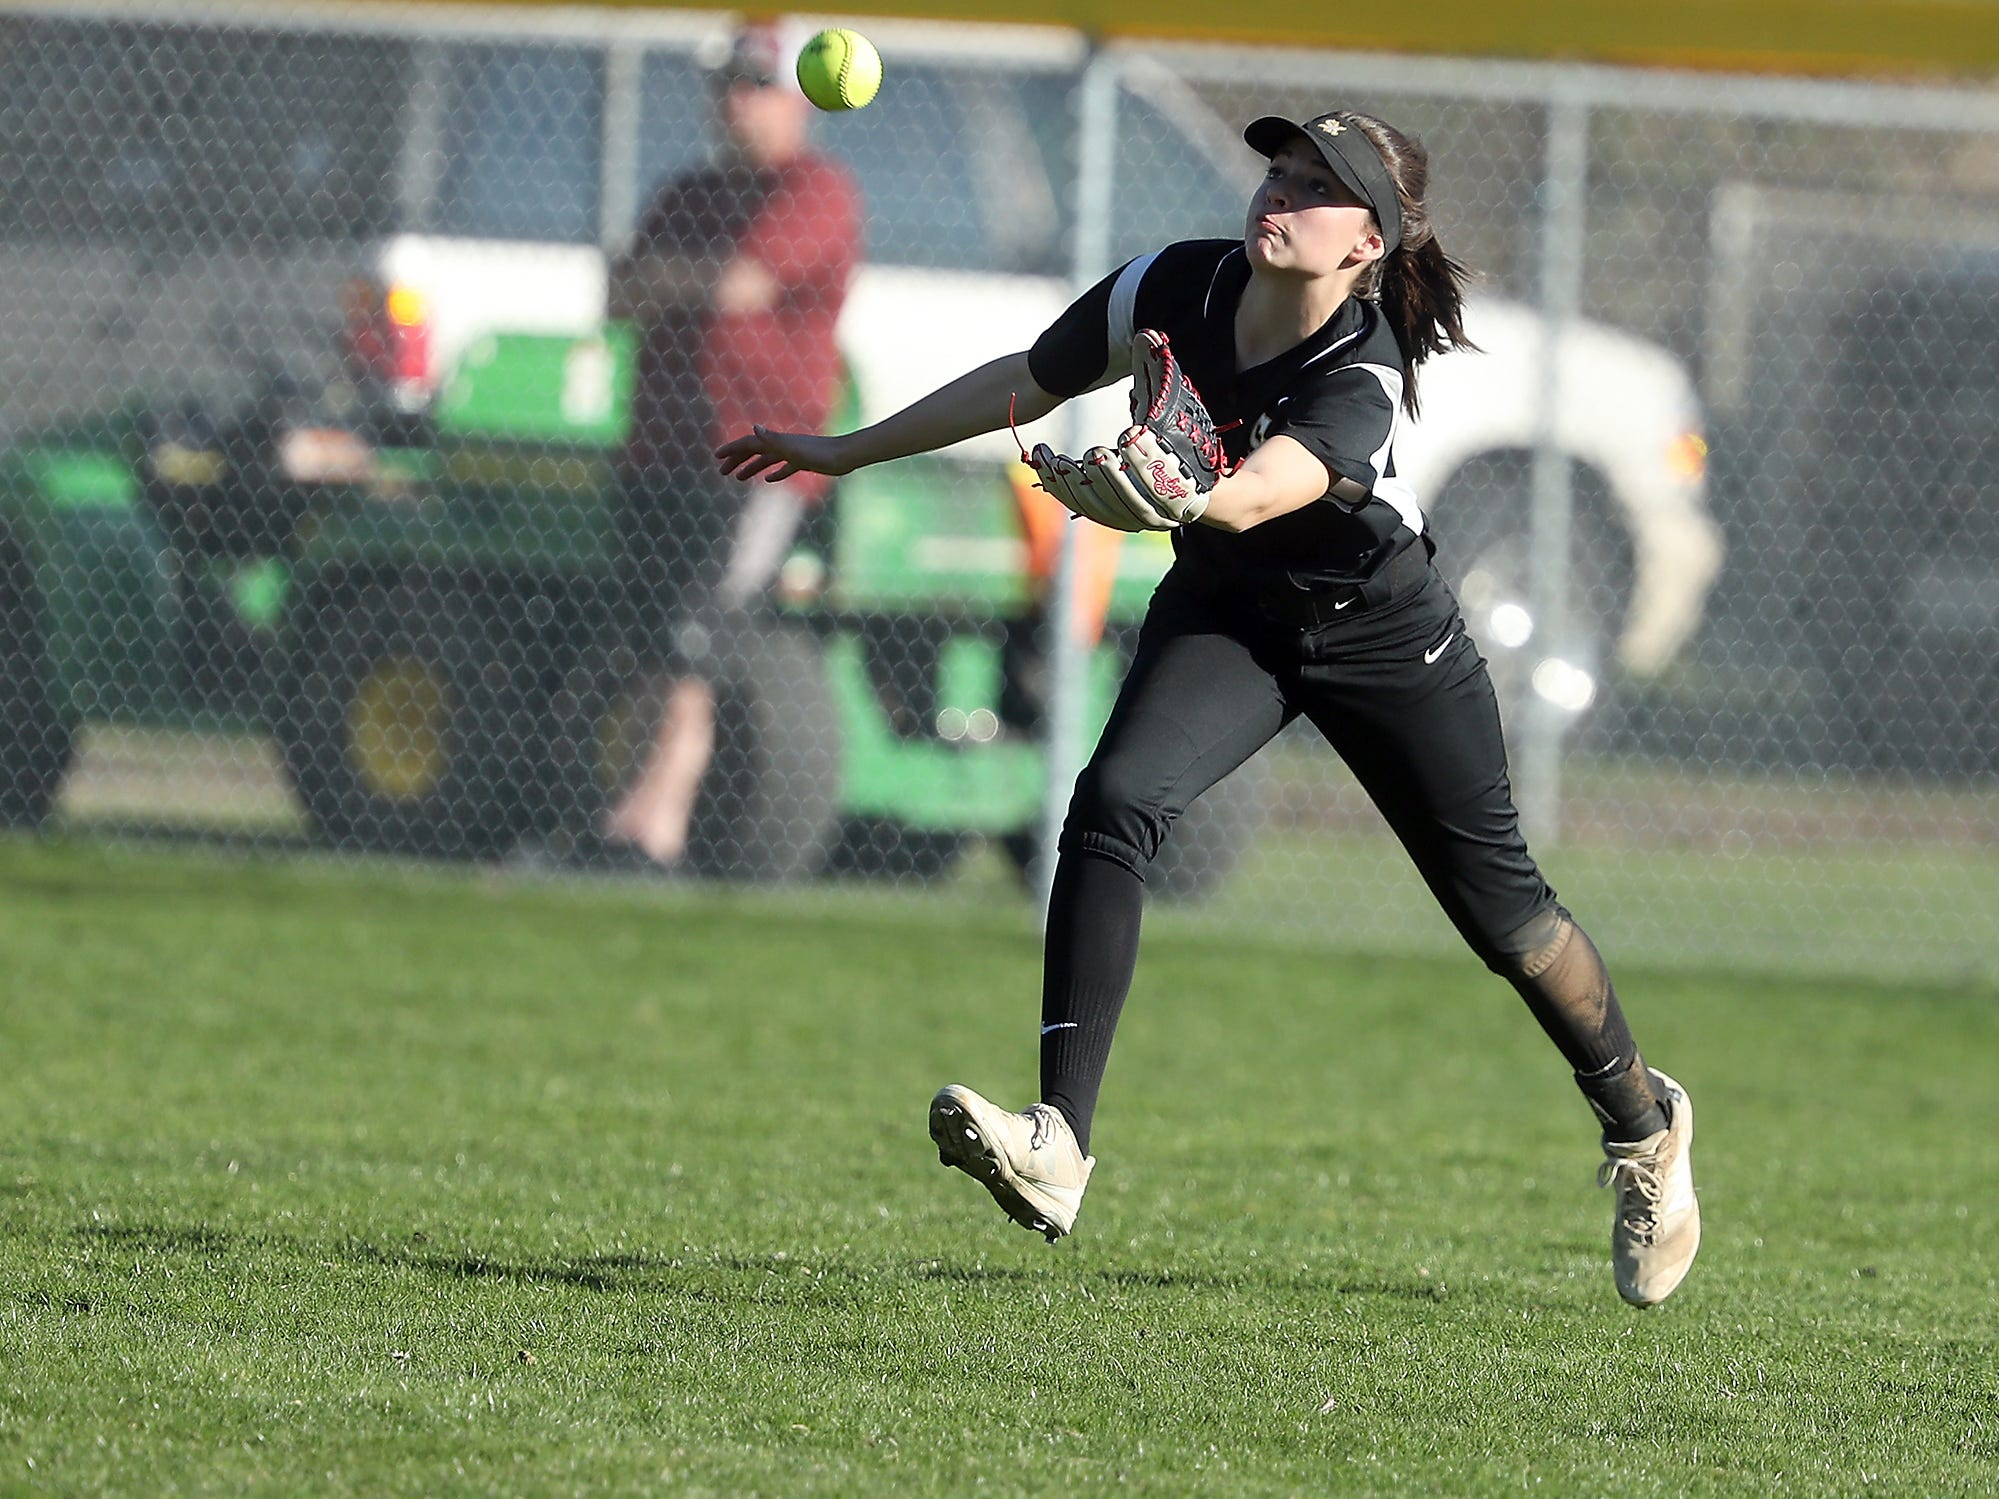 South Kitsap's Aubrey Faucett makes a grab for a fly ball against Puyallup on Tuesday, March 26, 2019.